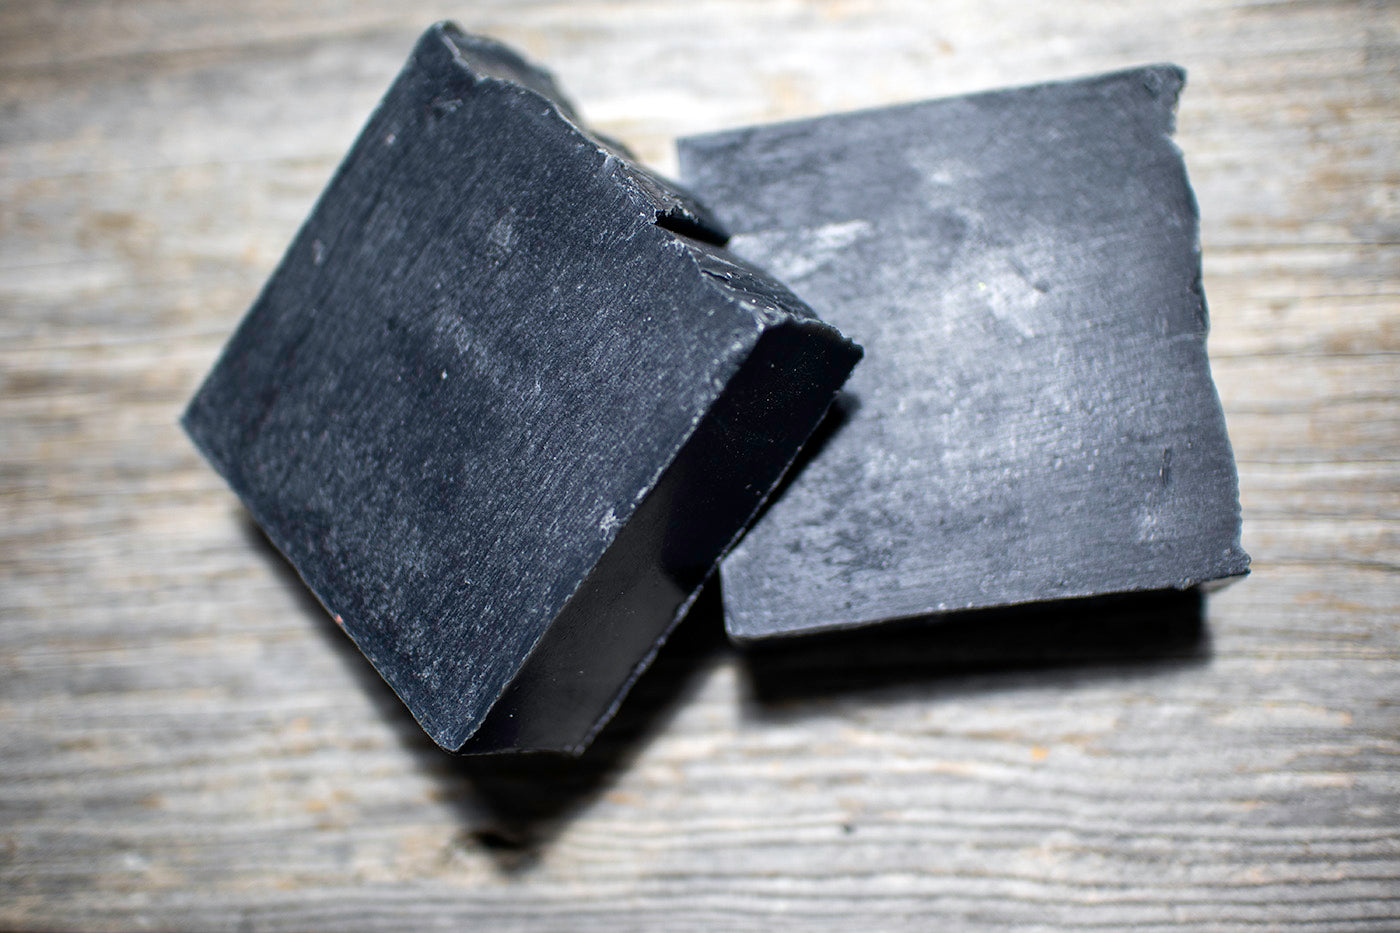 Two 4 oz bars of activated coconut charcoal beard soap - Wicked Beard Company